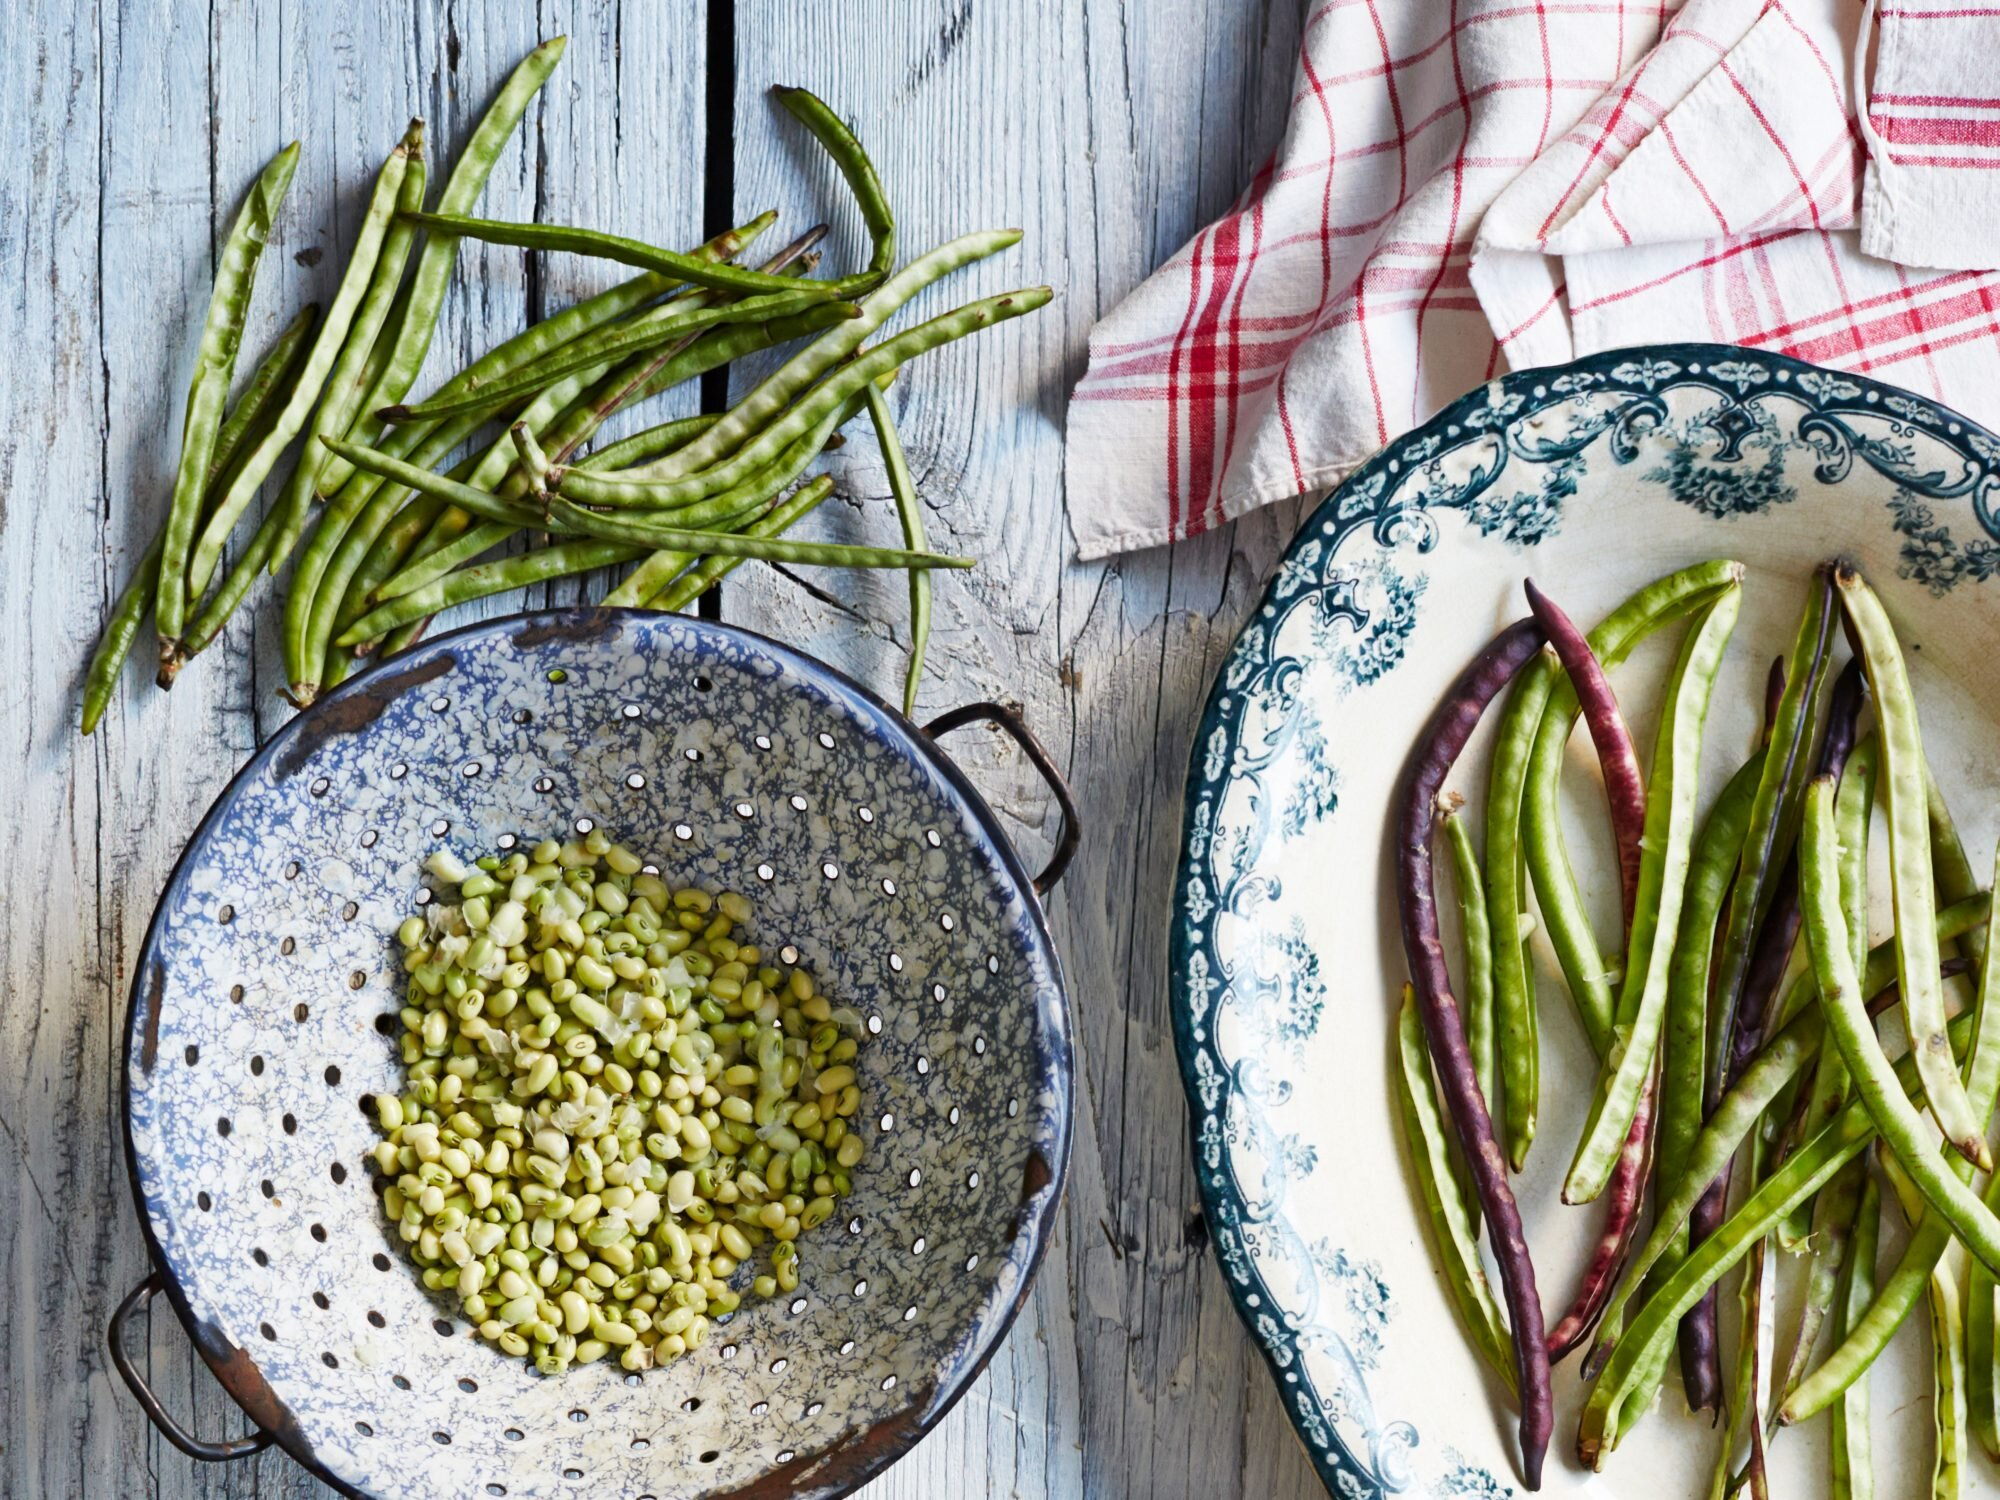 Types Of Field Peas Southern Living